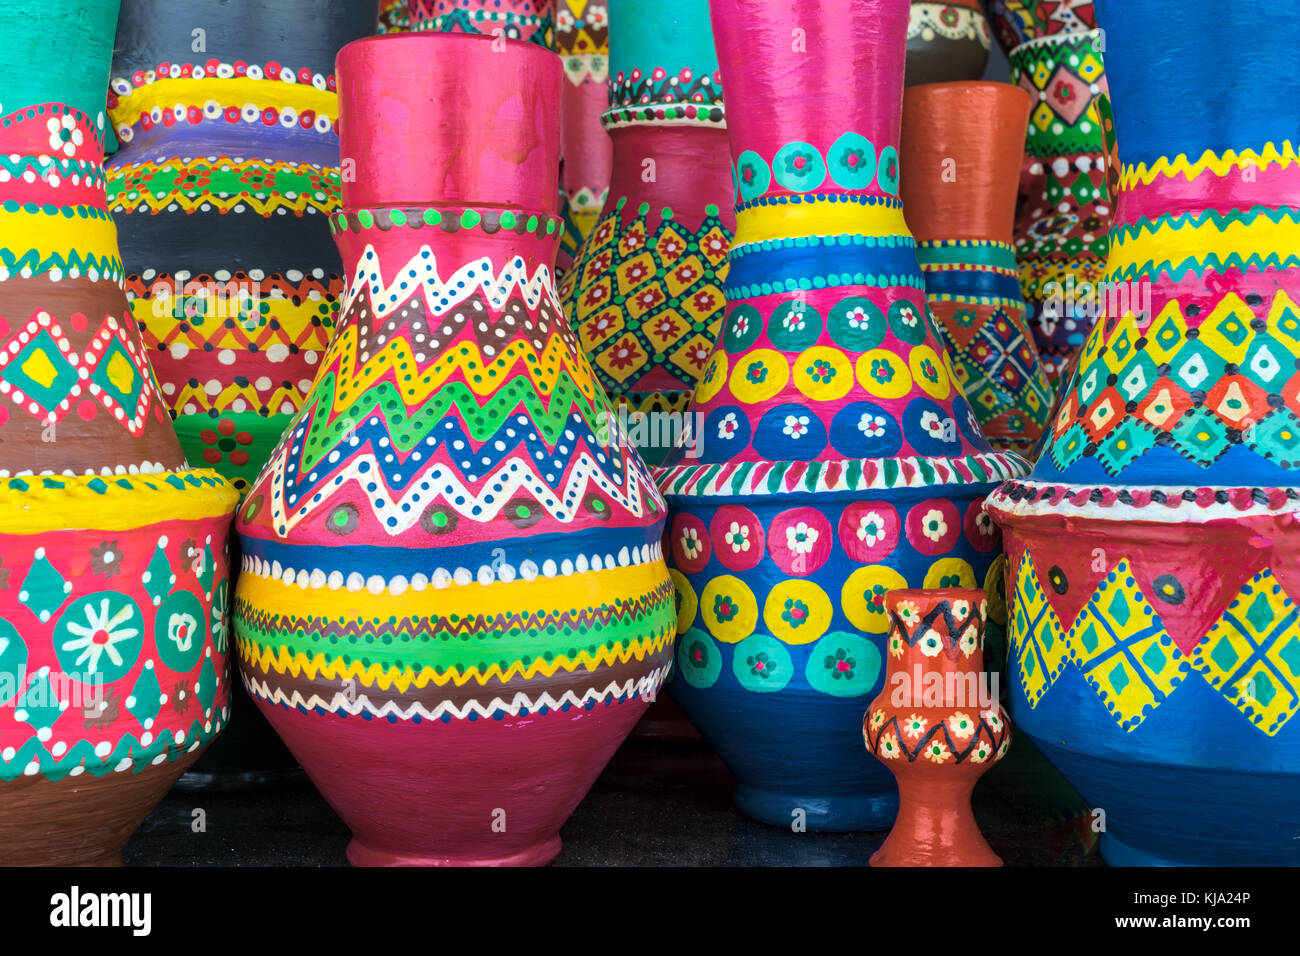 Front view of a composition of artistic painted colorful handcrafted pottery vases - Stock Image